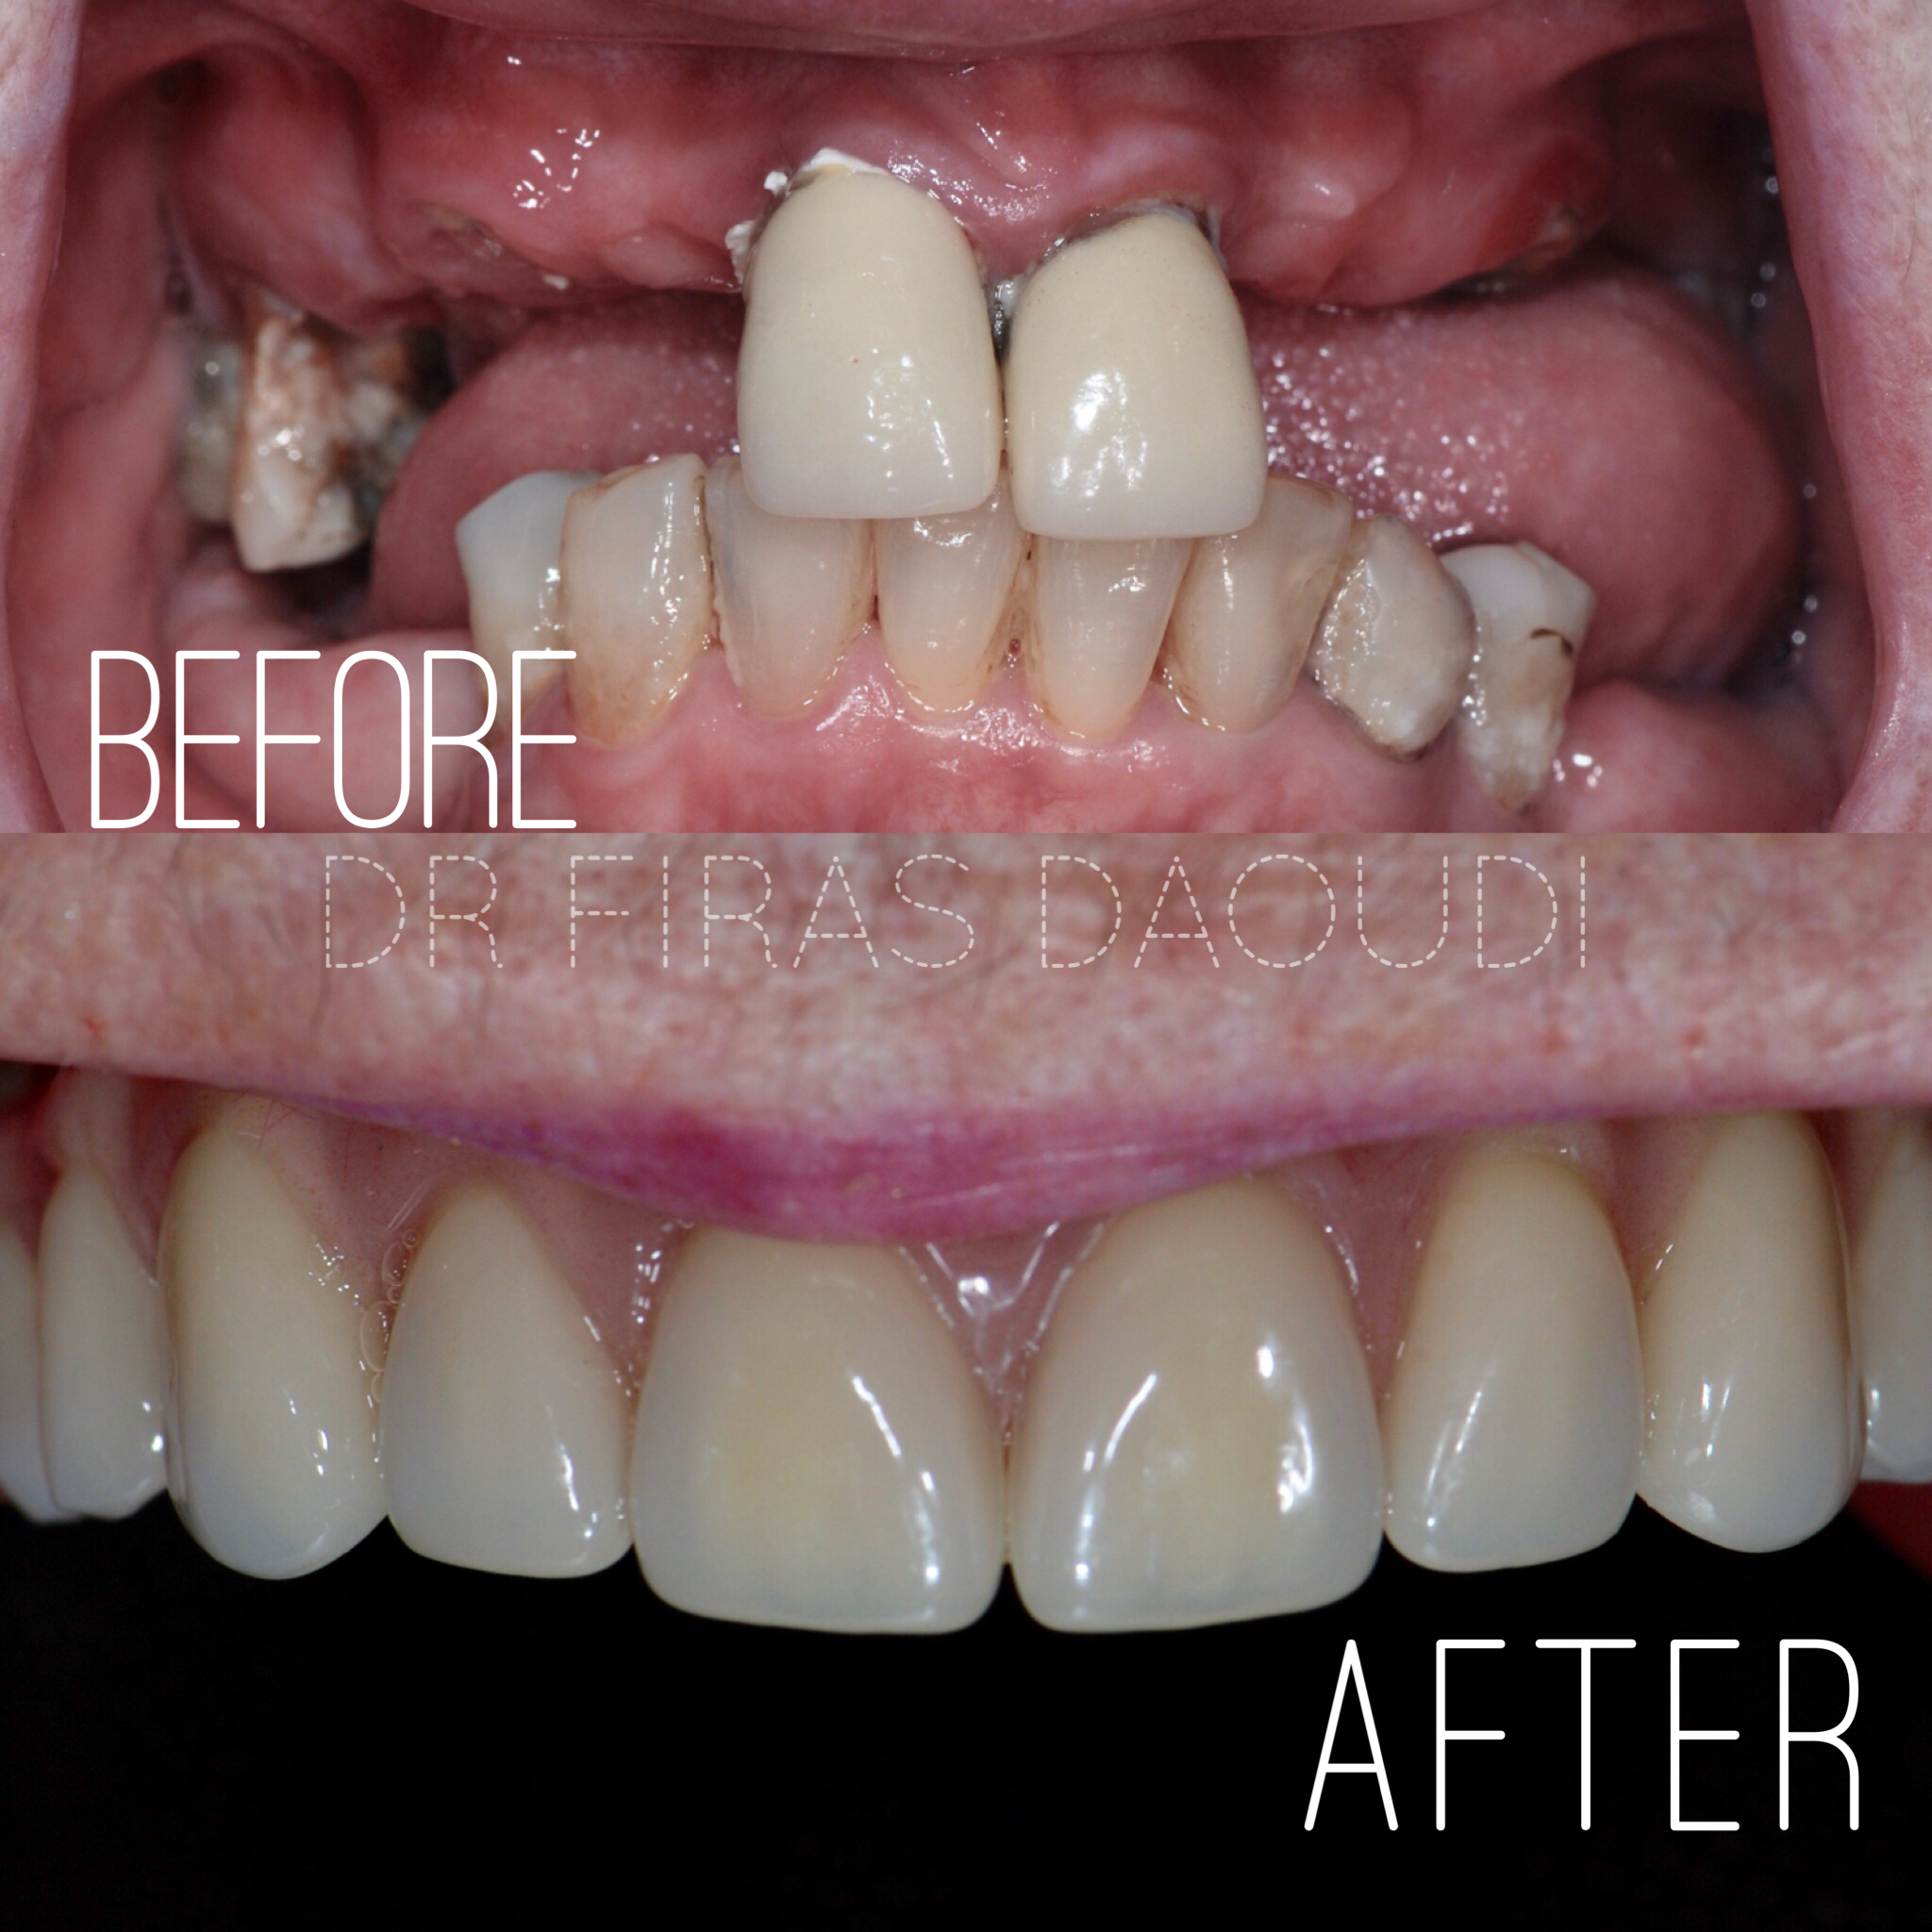 How Dental implants Can Improve Your Smile And Function